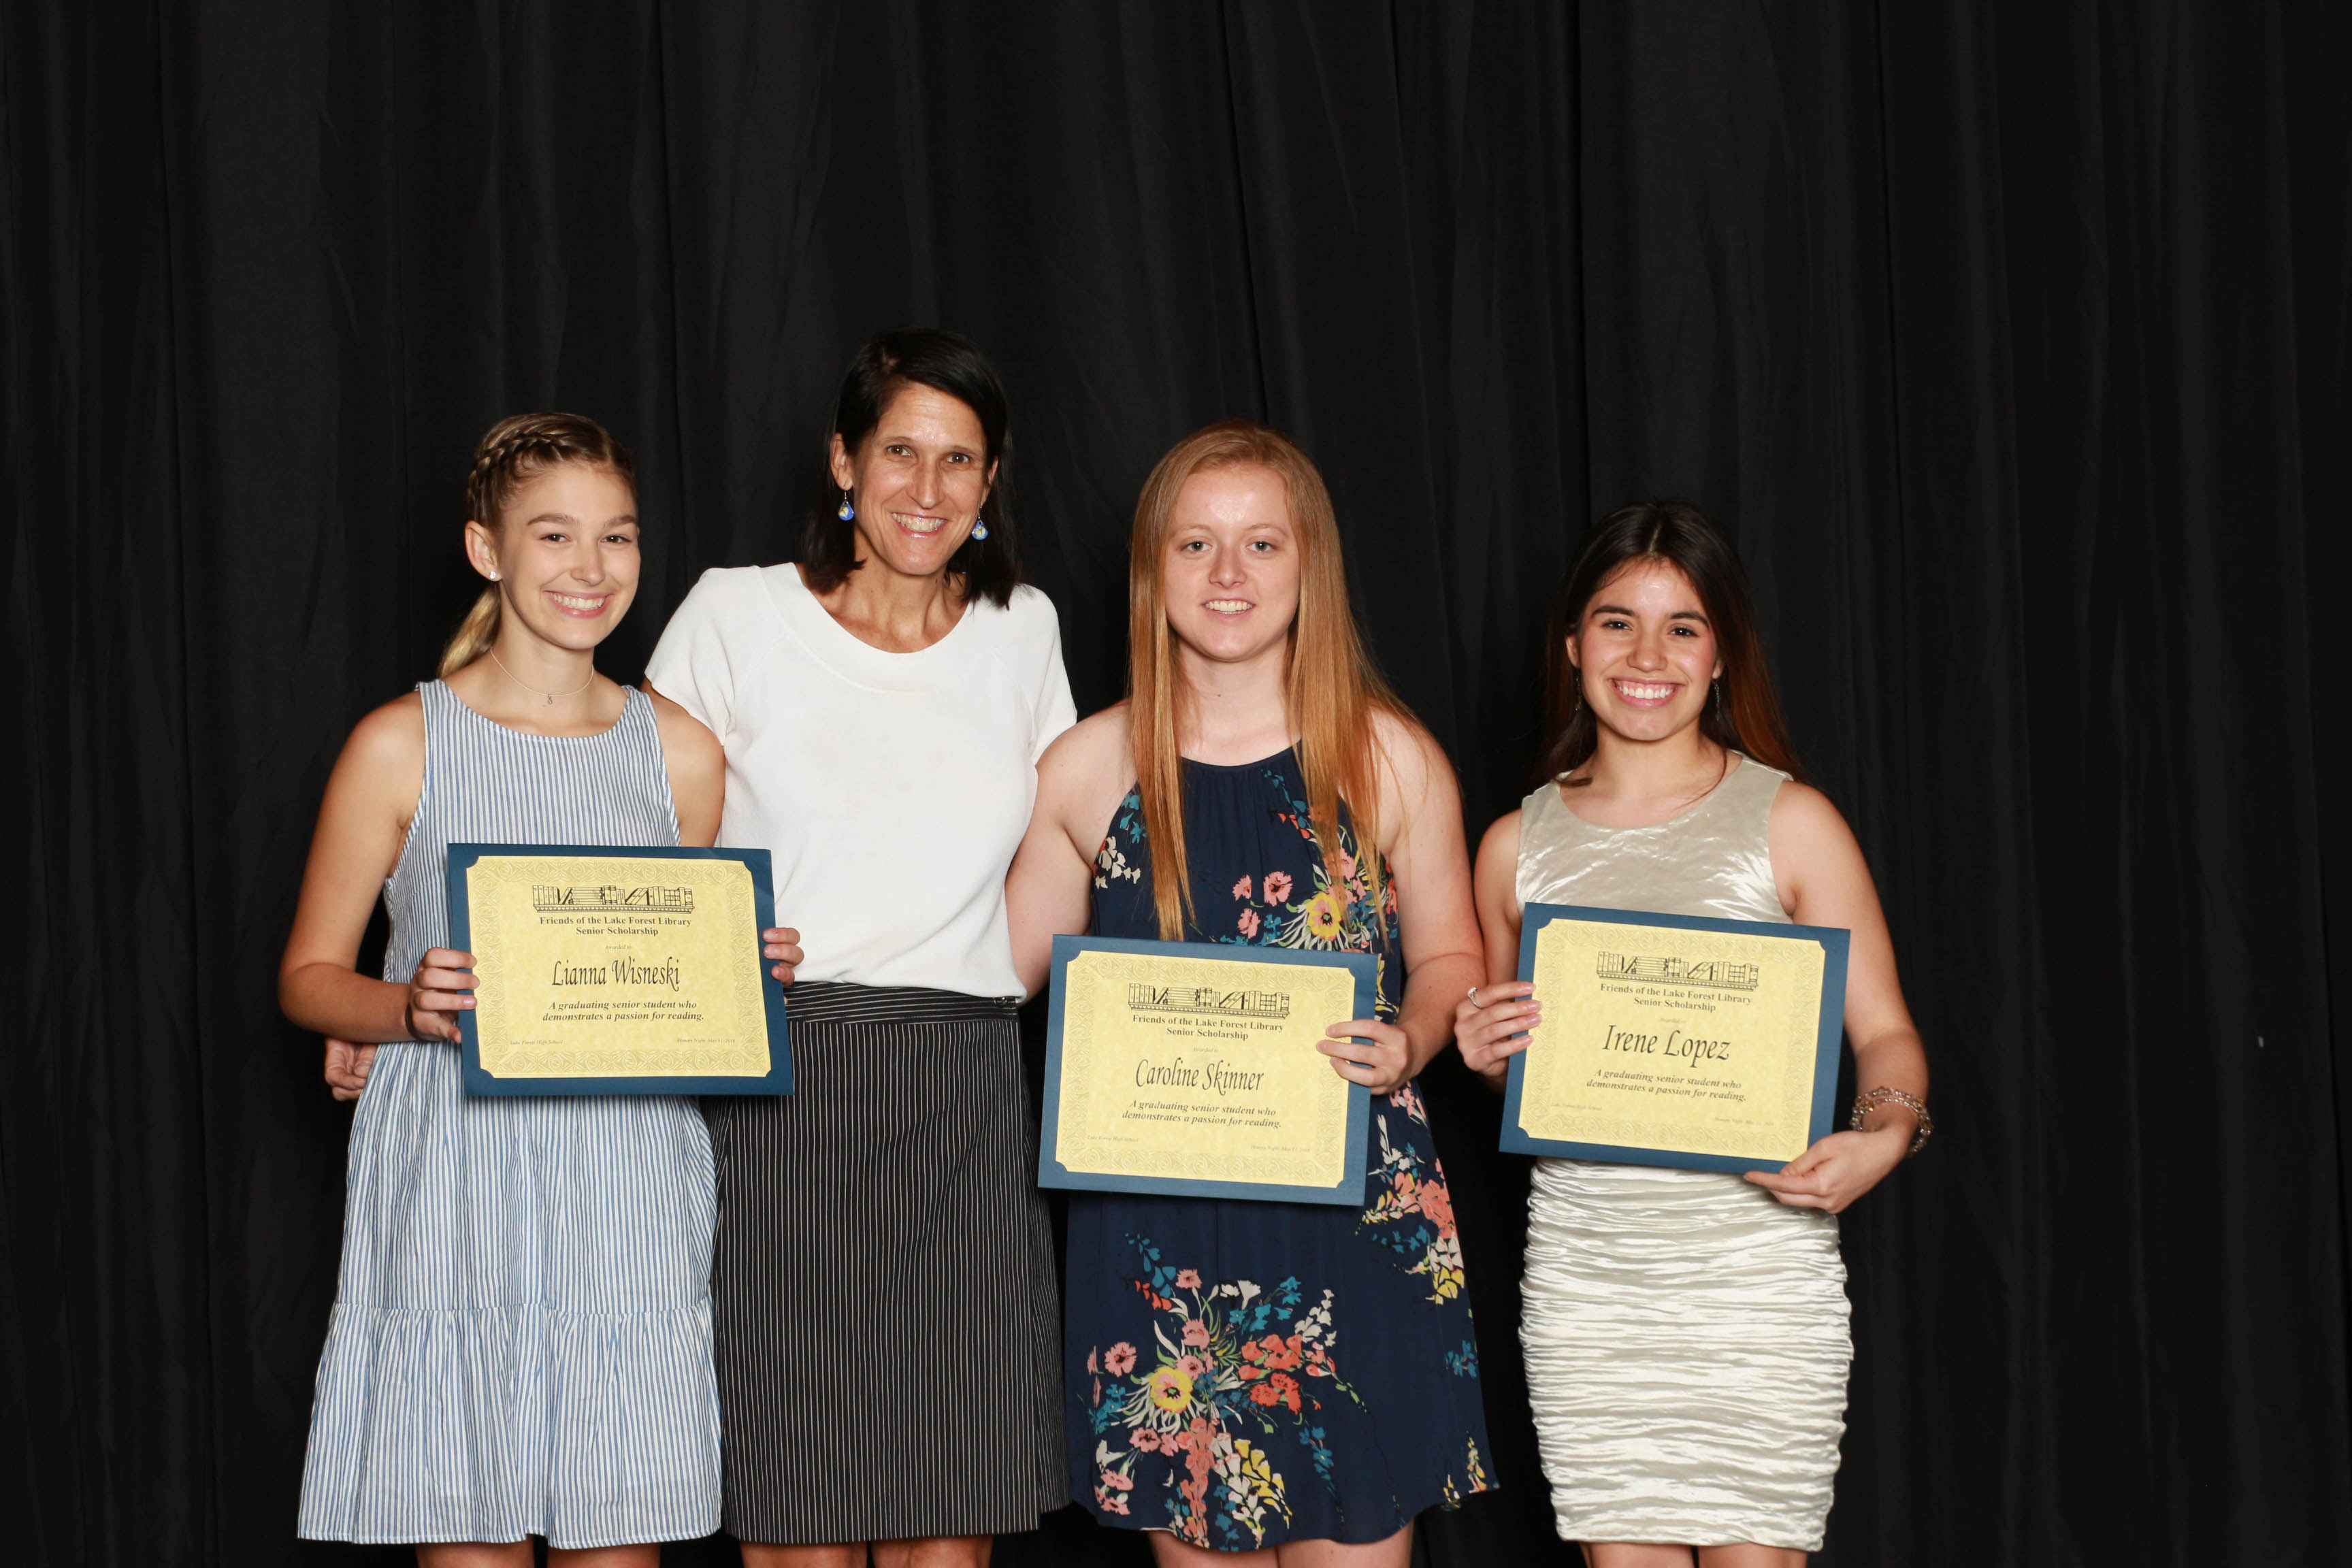 2018 Friends Scholarship recipients Lianna Wisneski, Caroline Skinner, and Irene Lopez with Friends Board Member Tish Borkowski Houston